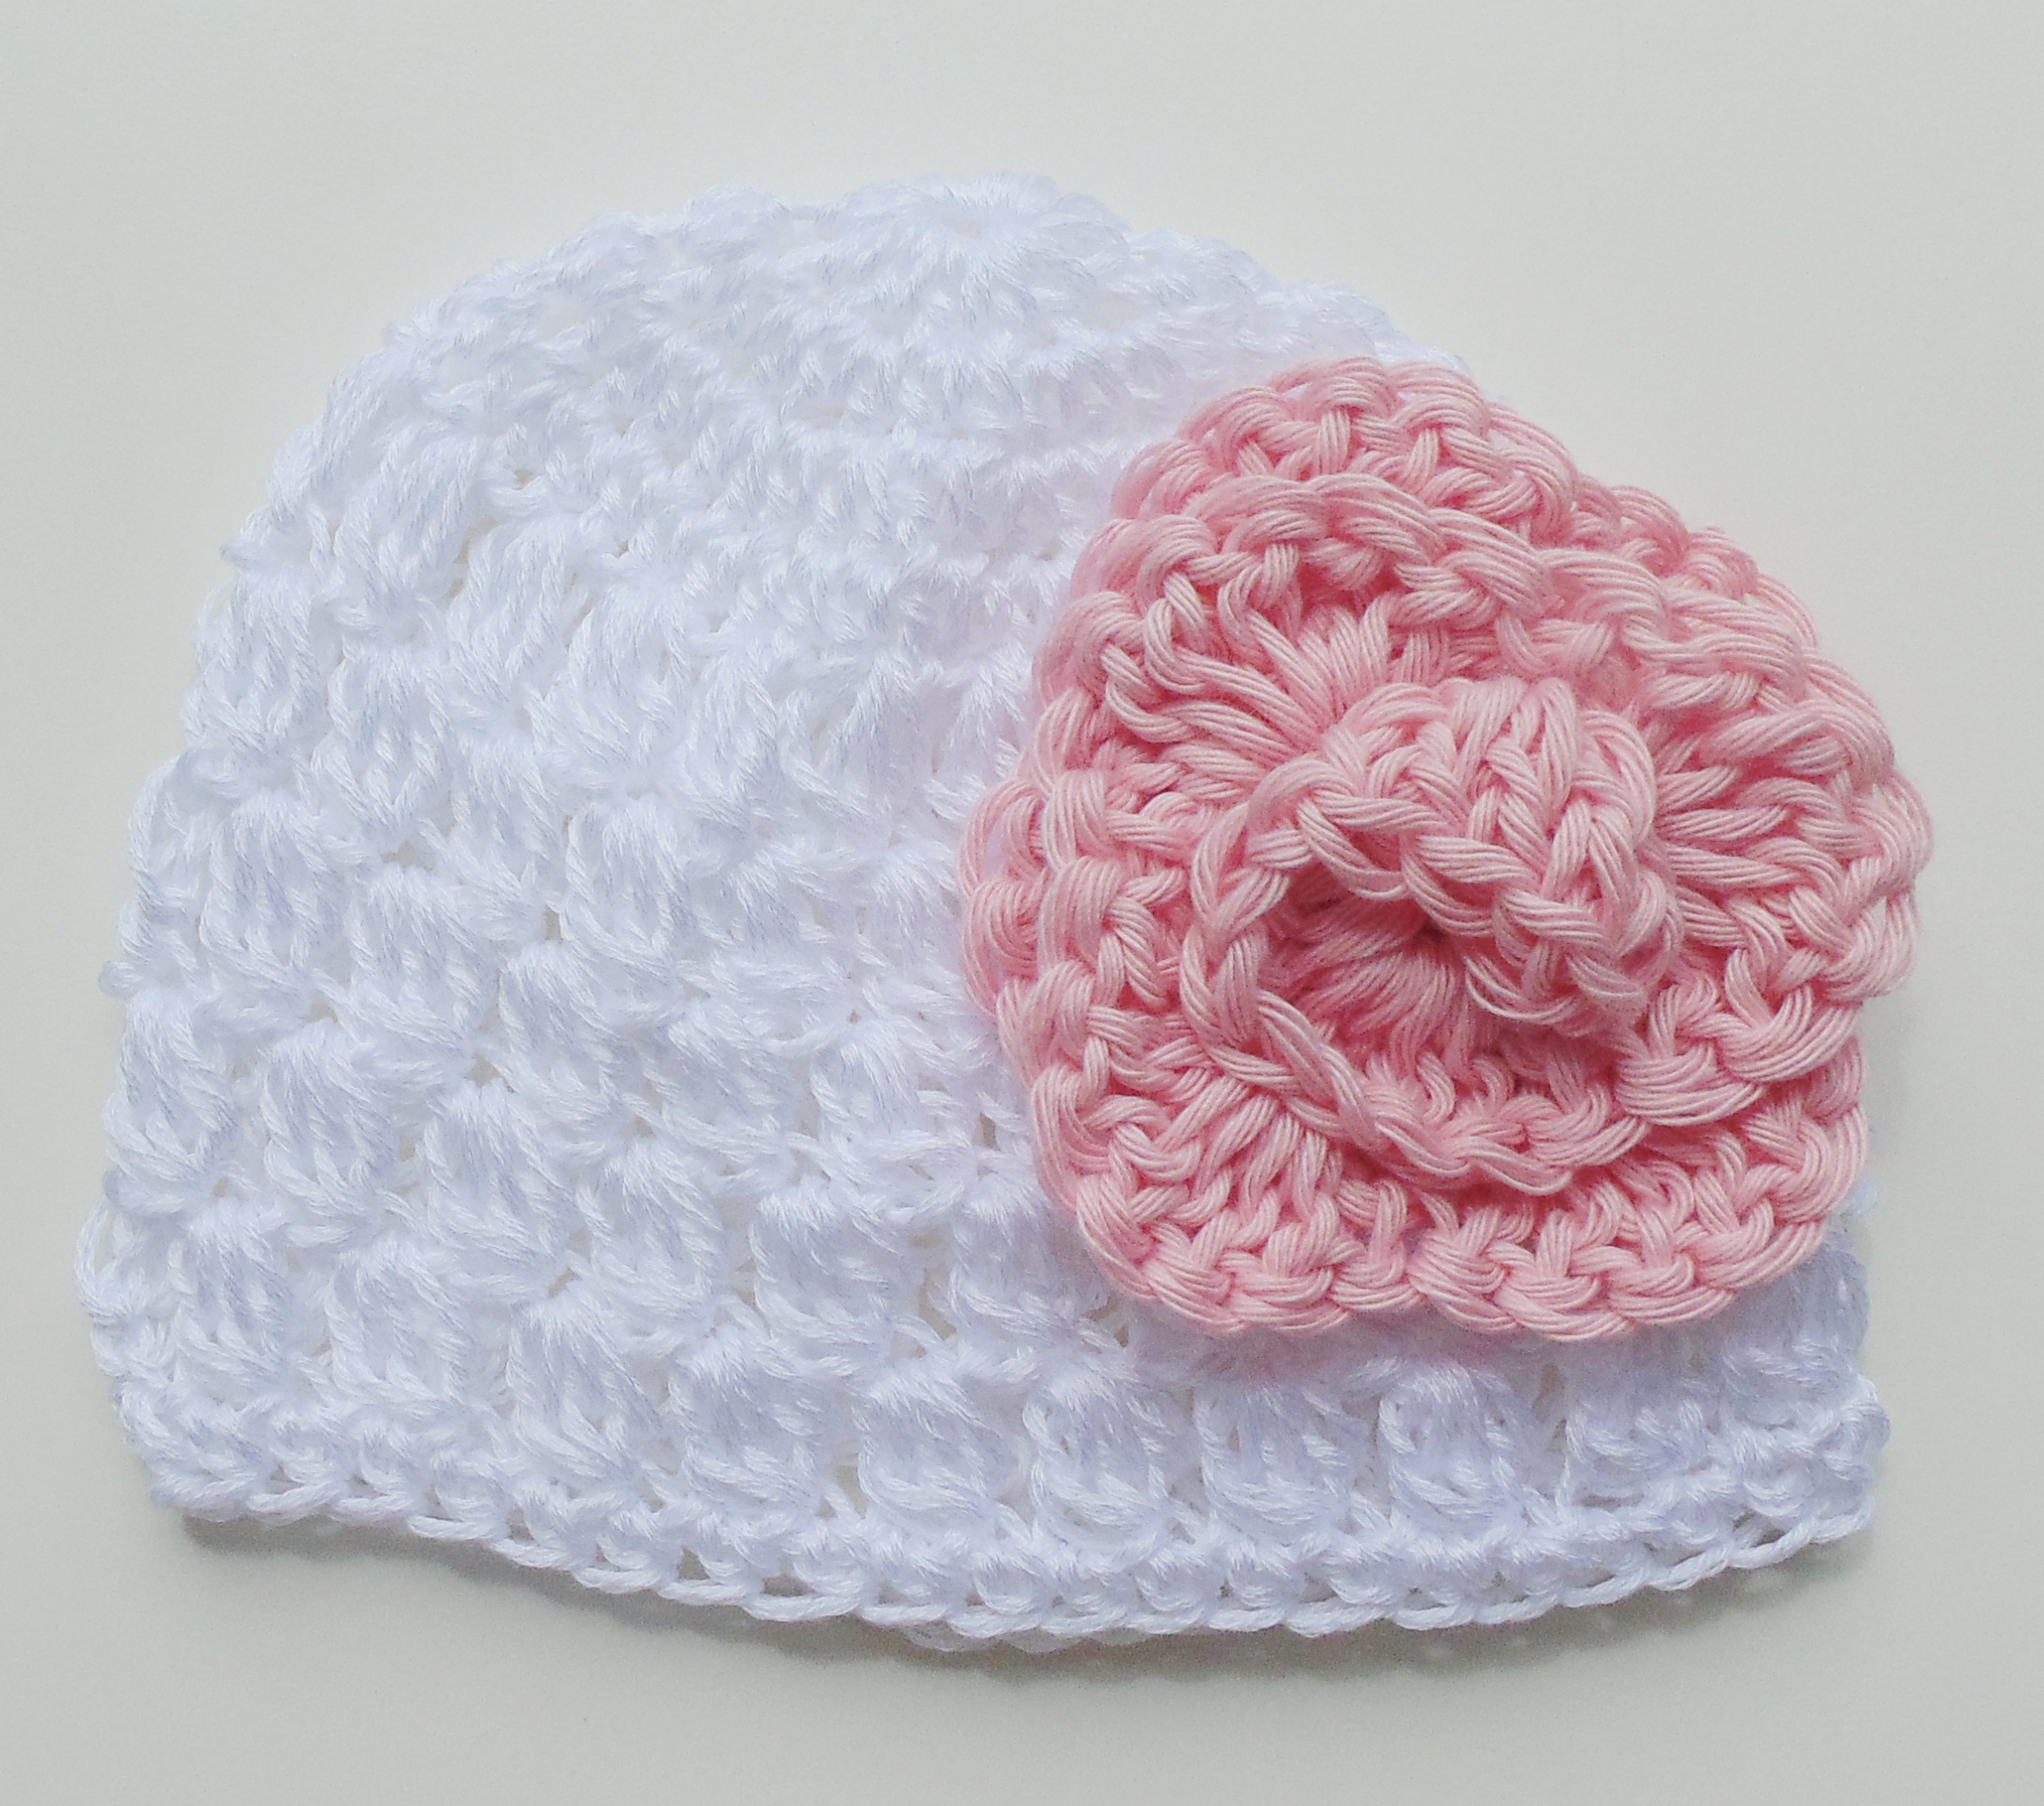 Super Cappellino per bambina ad uncinetto - Blogmamma.it : Blogmamma.it BK04